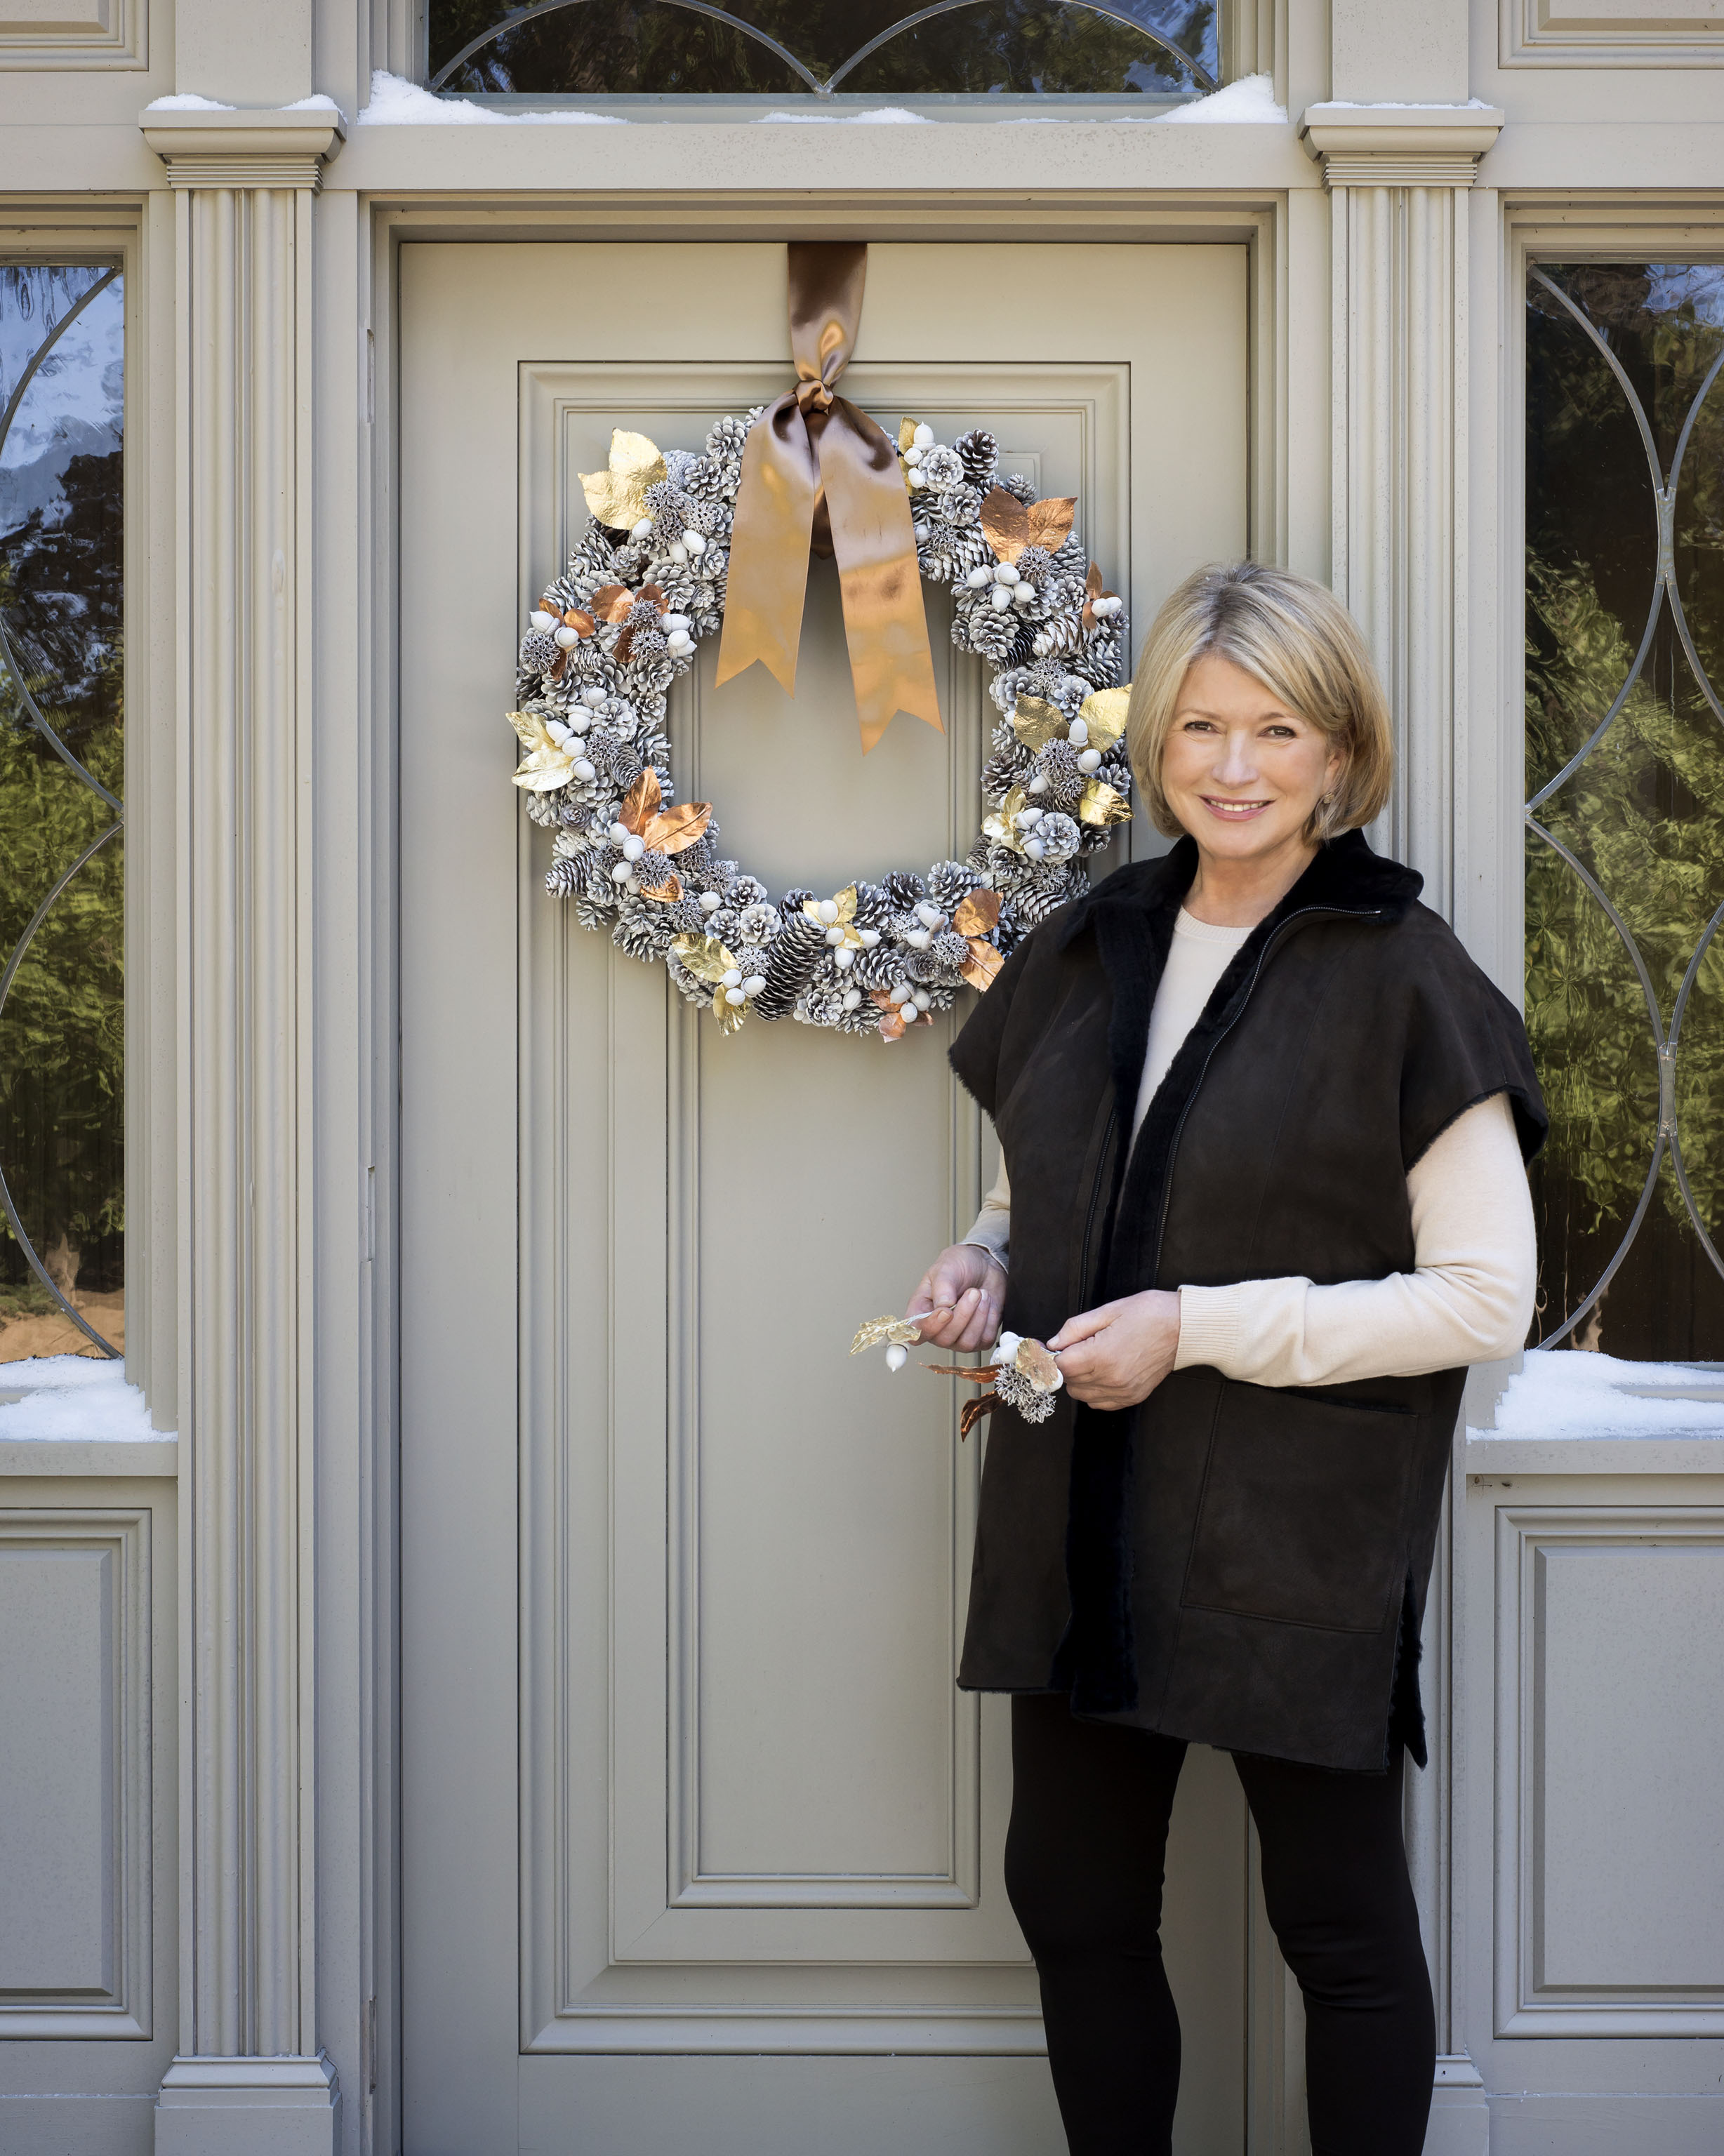 How to Hang a Wreath Without Making Holes in the Door